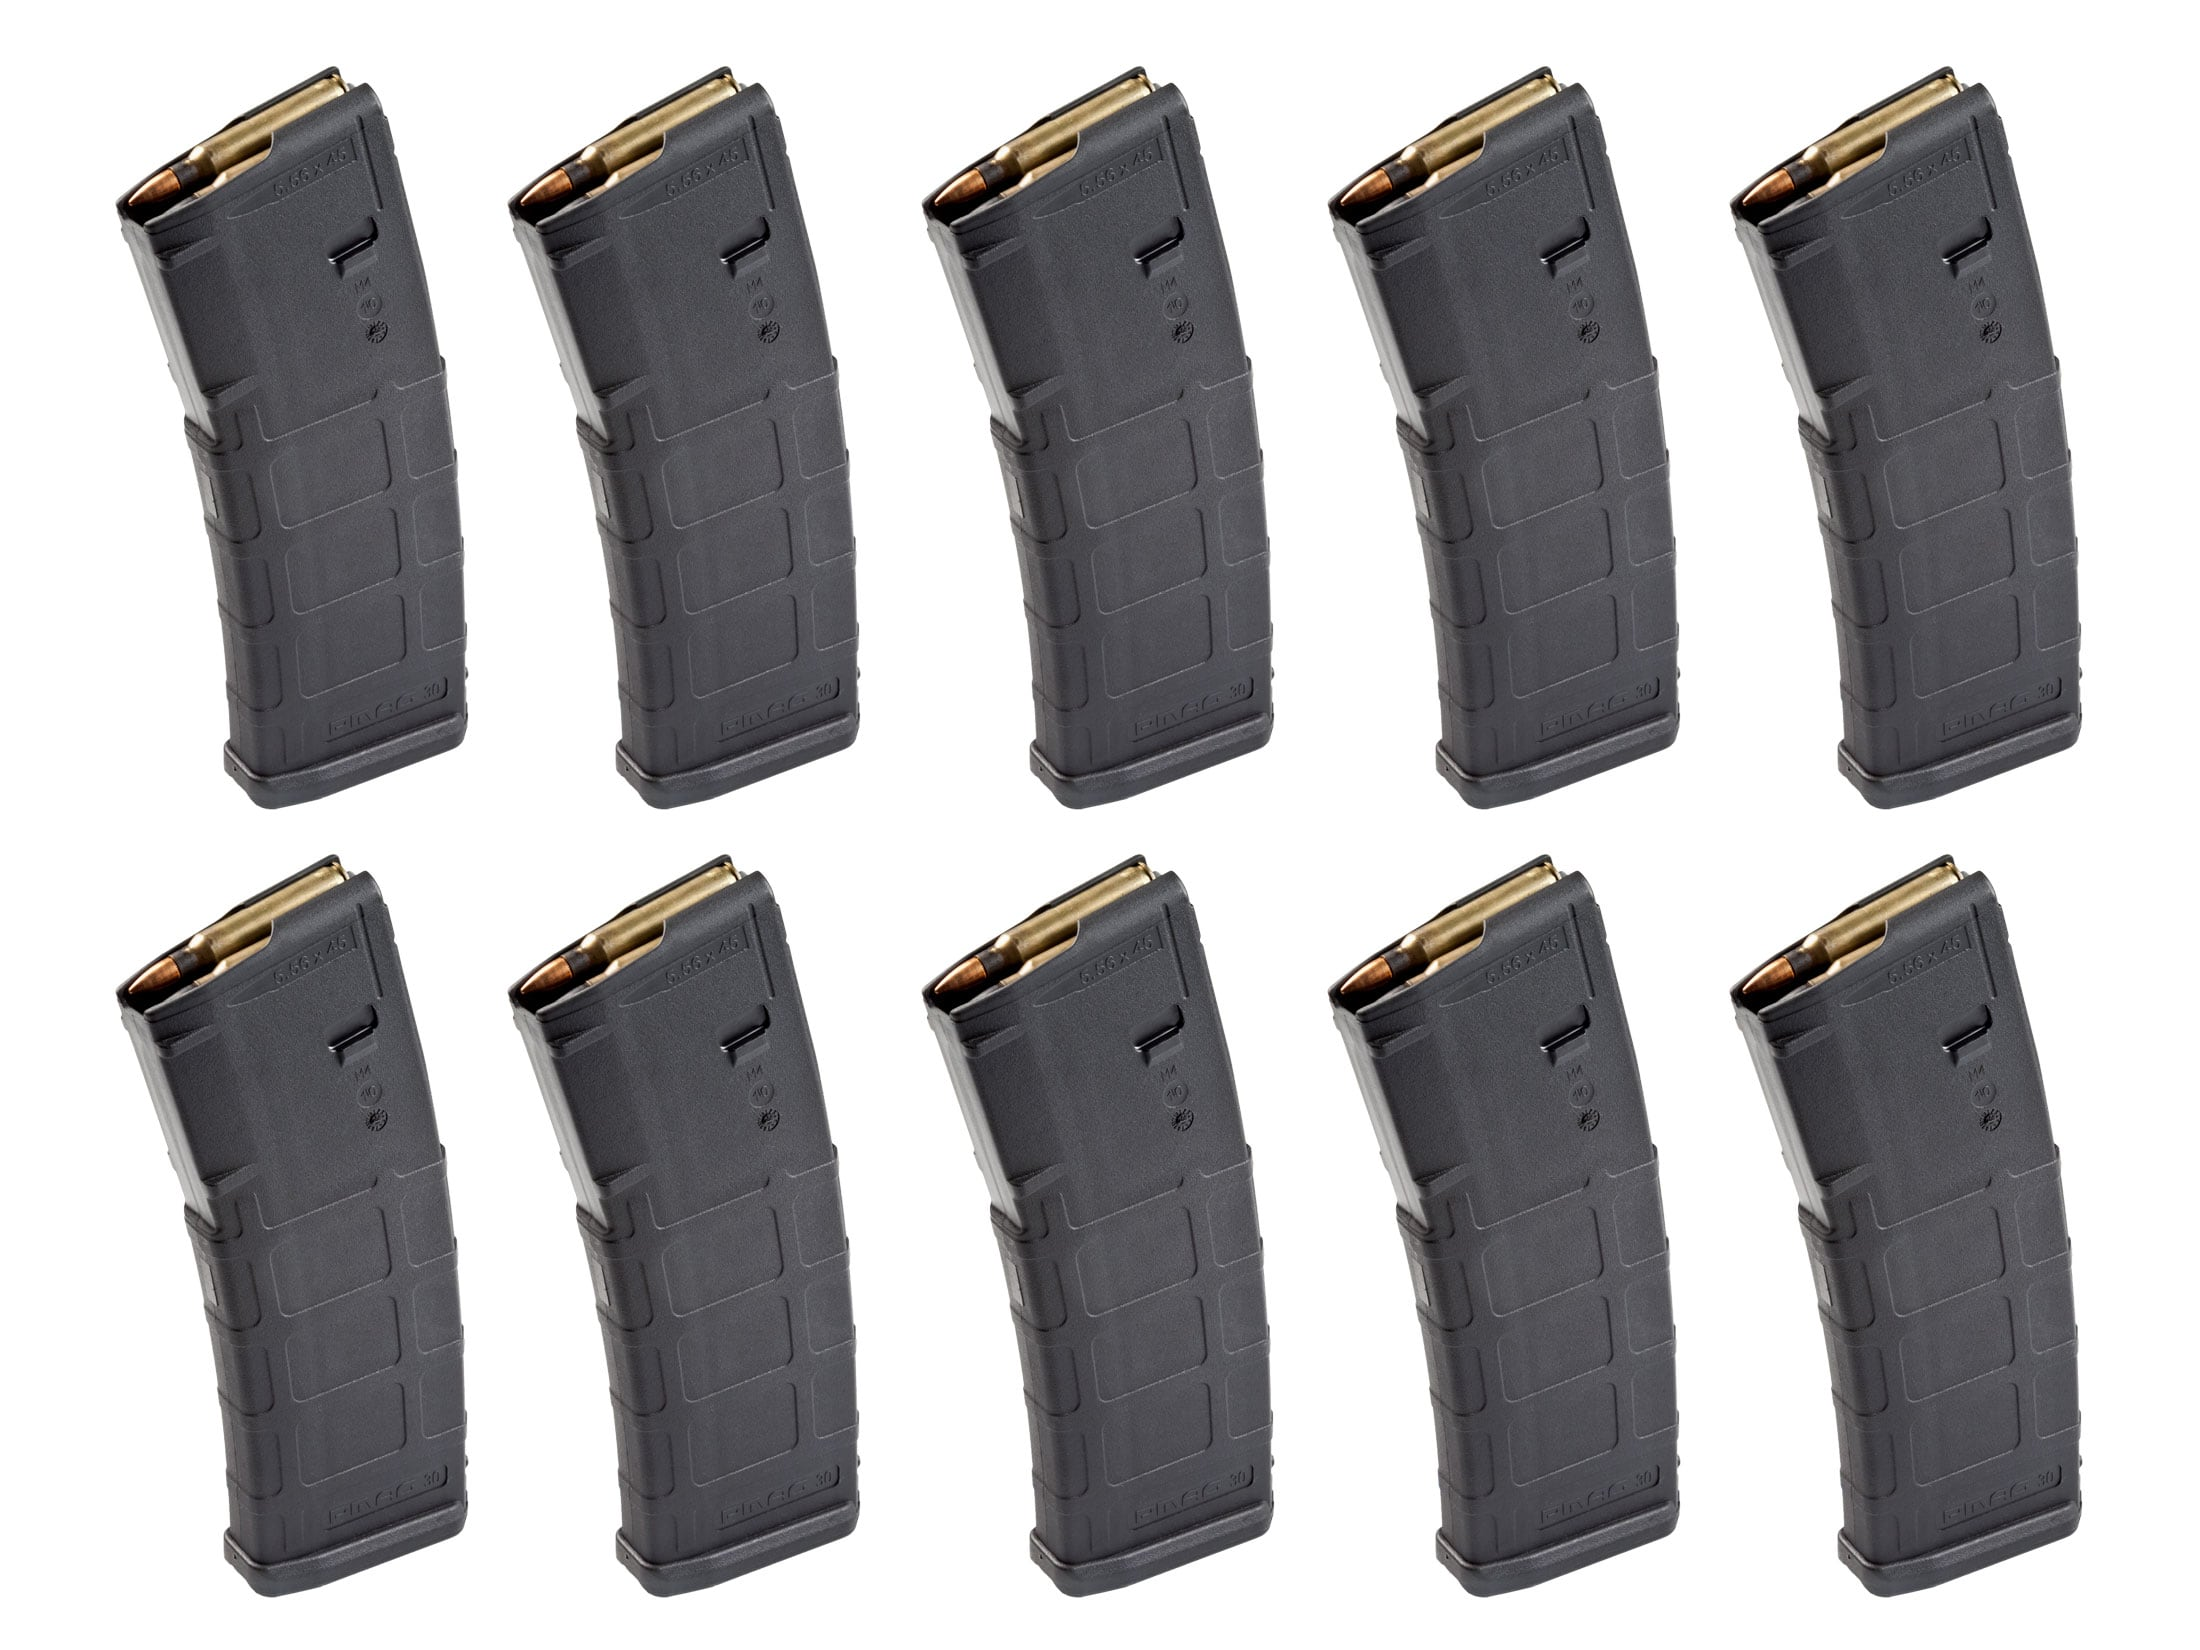 Magpul PMAG 30 5.56 x45 mm Magazine